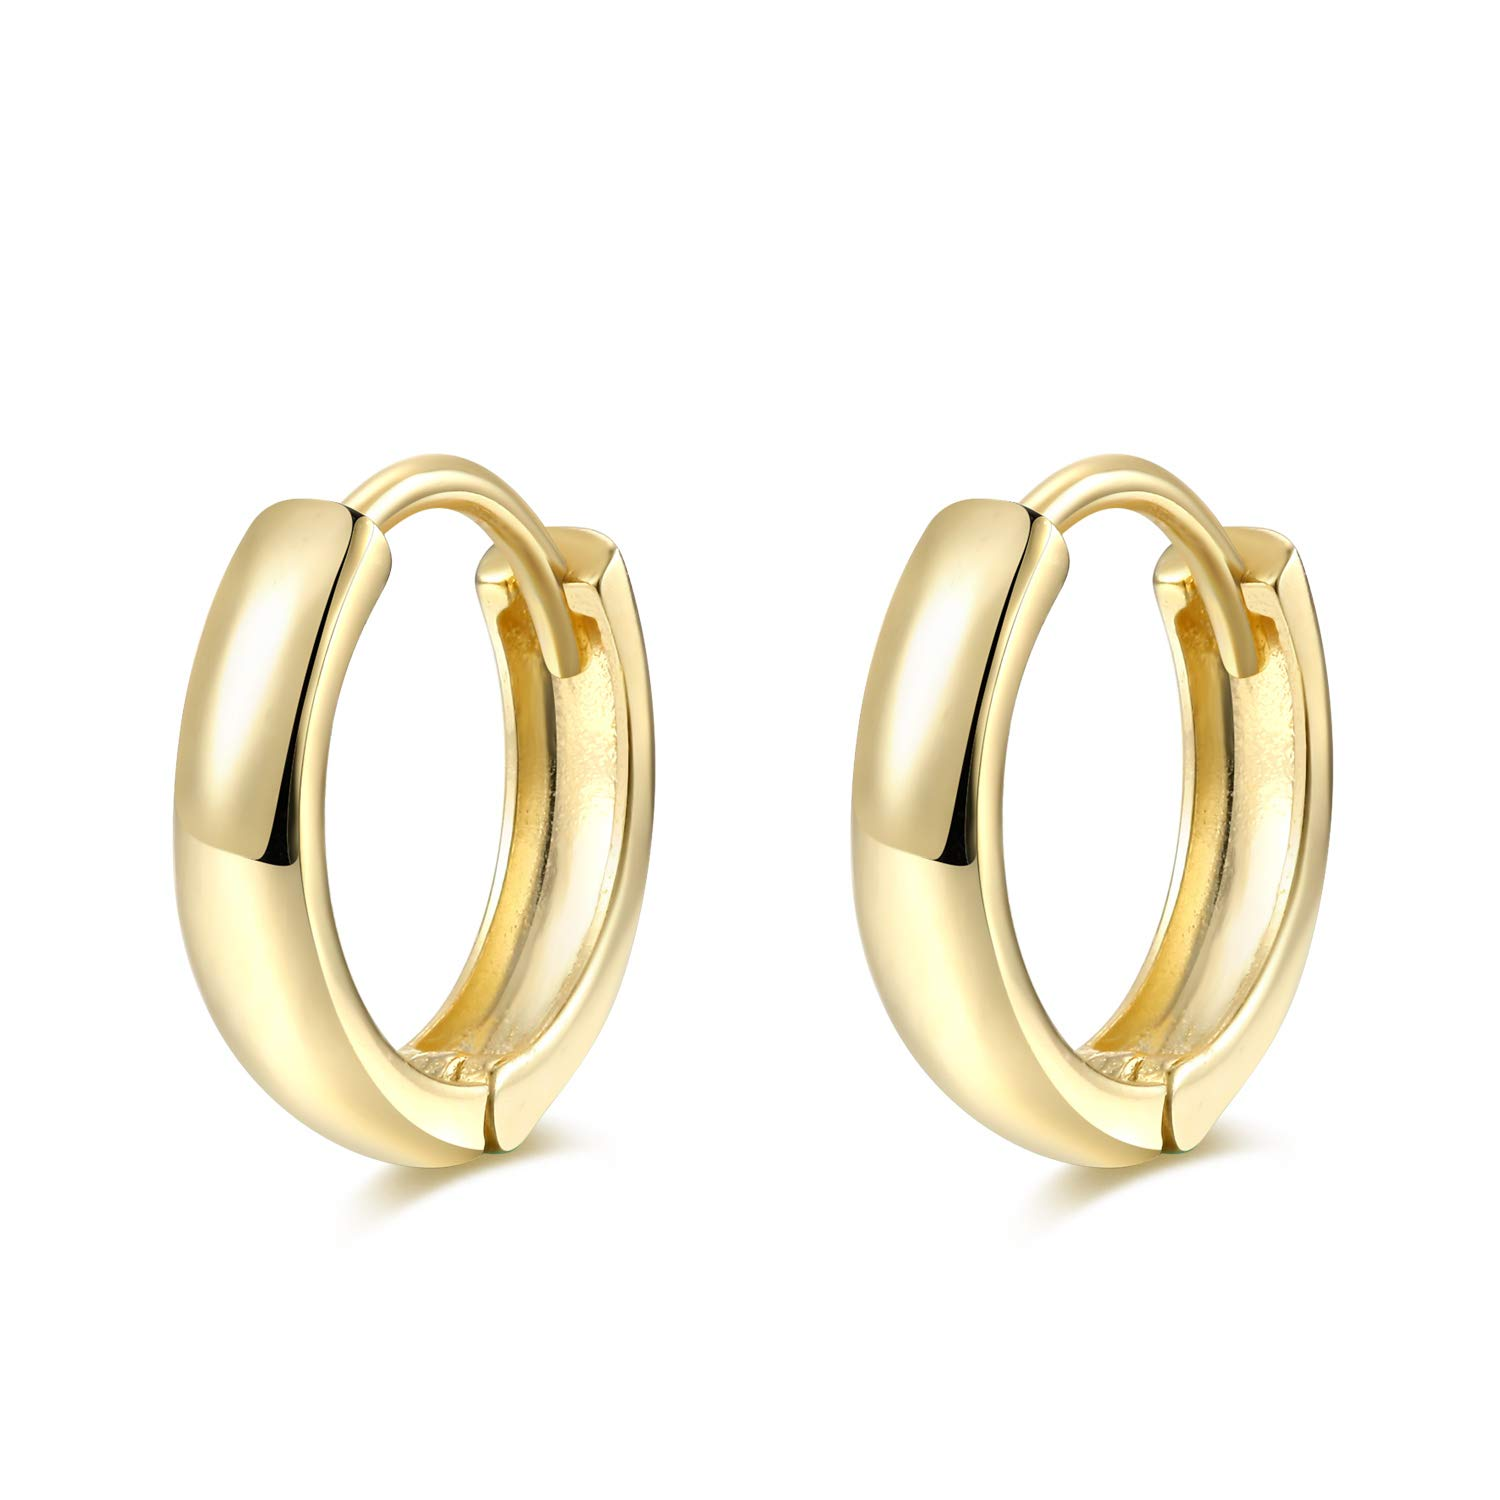 8mm Tiny Cartilage Huggie Hoop Earrings 5mm 2mm Wide Thick Sterling Silver Ear Cuffs